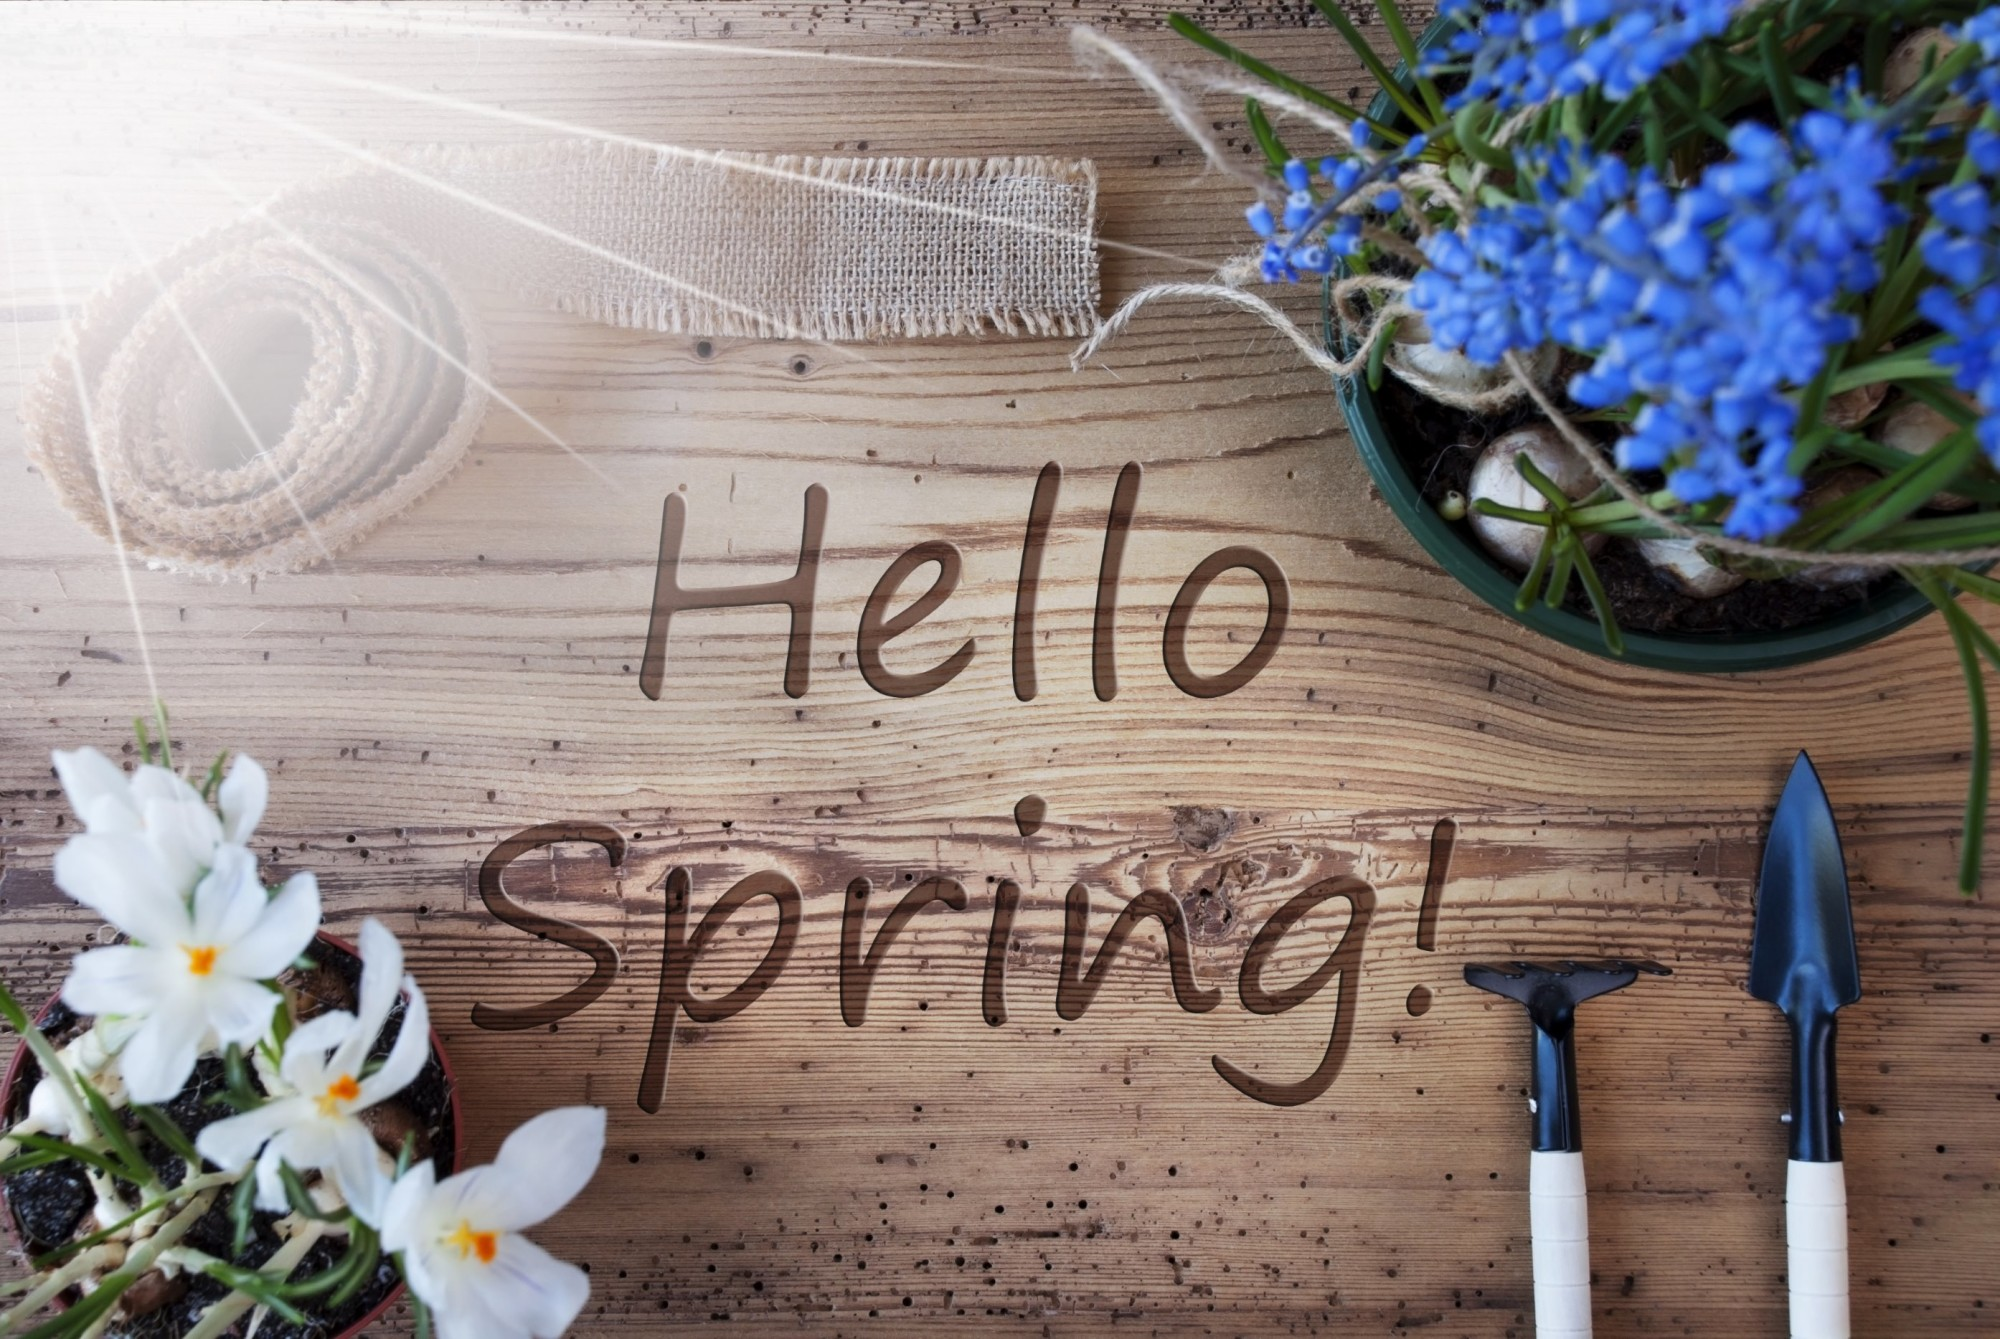 spring, new season, fresh beginnings, growth